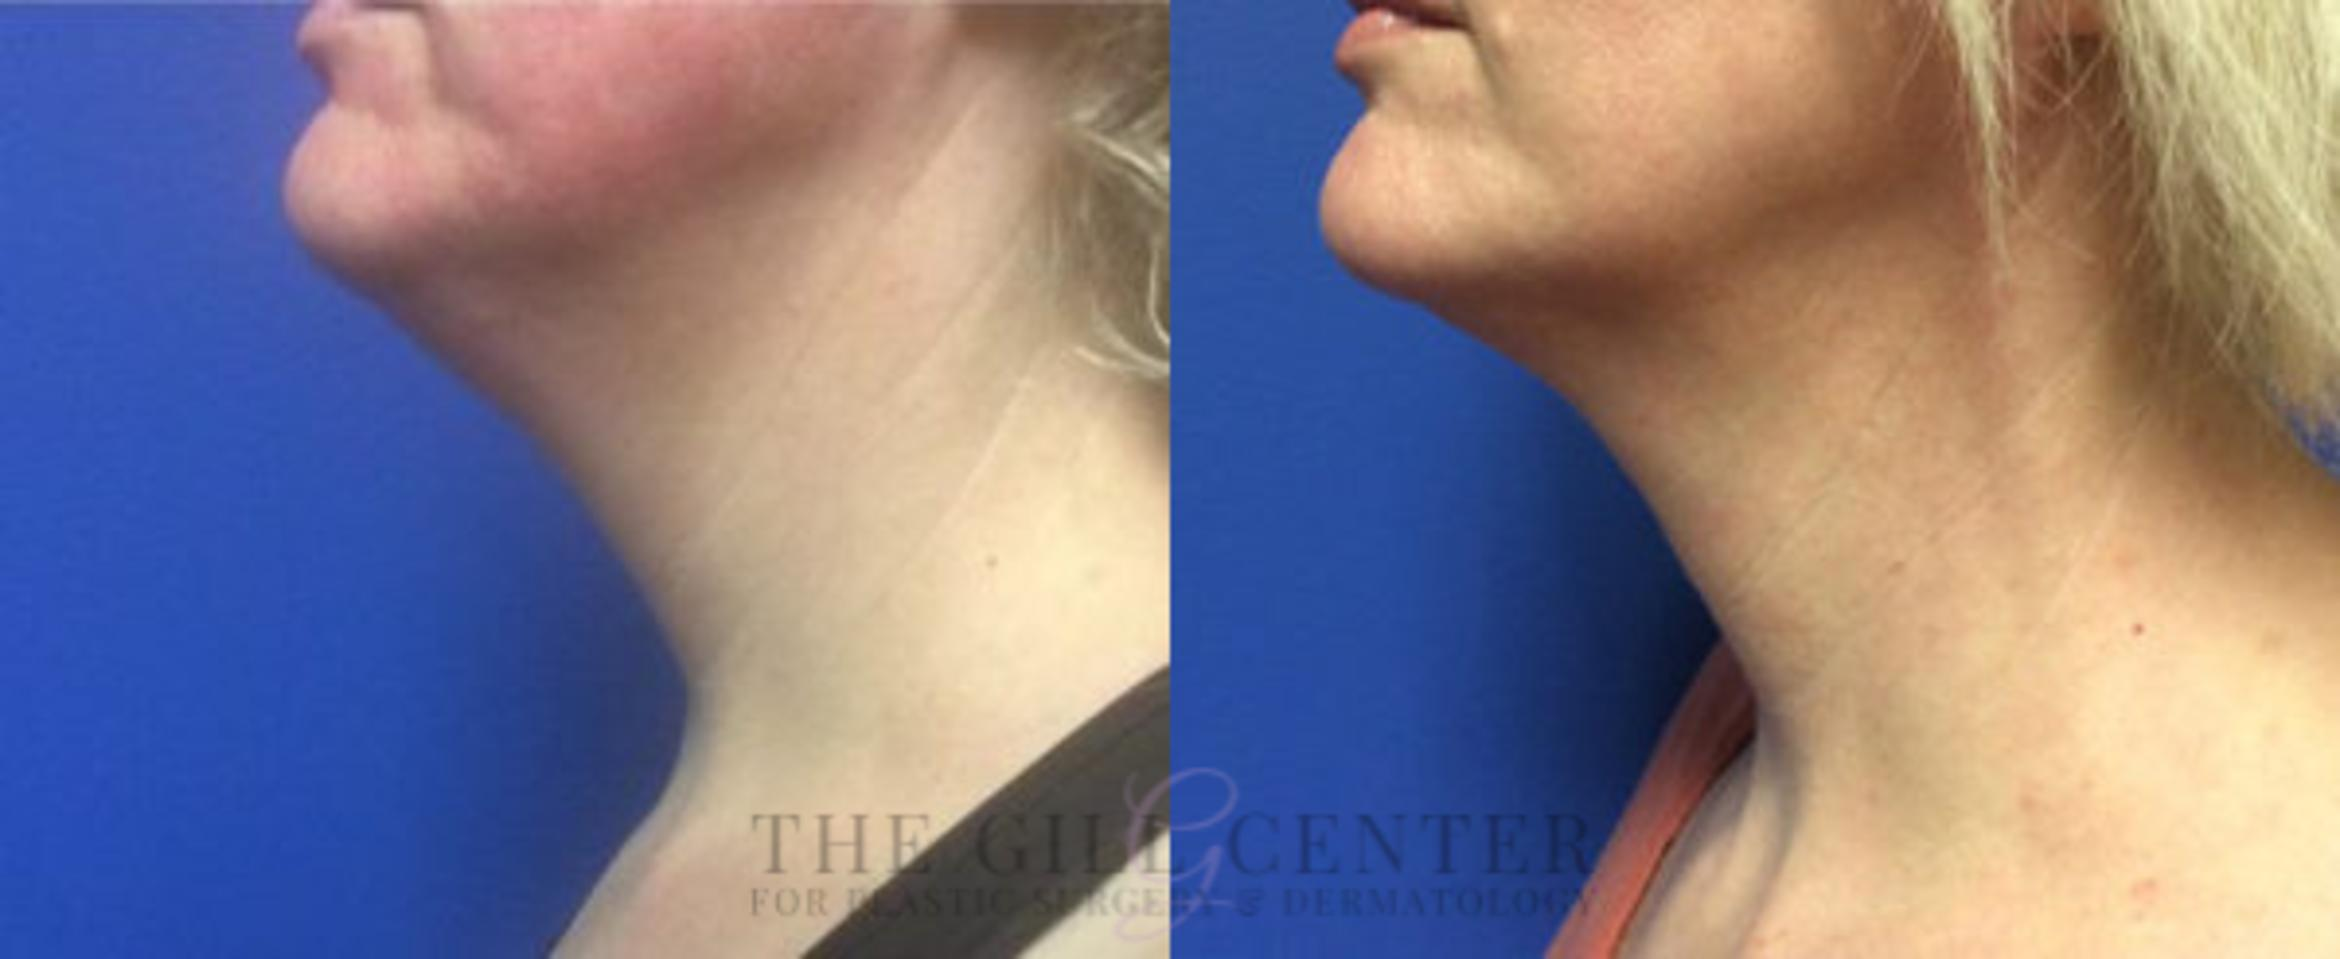 KYBELLA® Case 6 Before & After Left Side | Shenandoah, TX | The Gill Center for Plastic Surgery and Dermatology